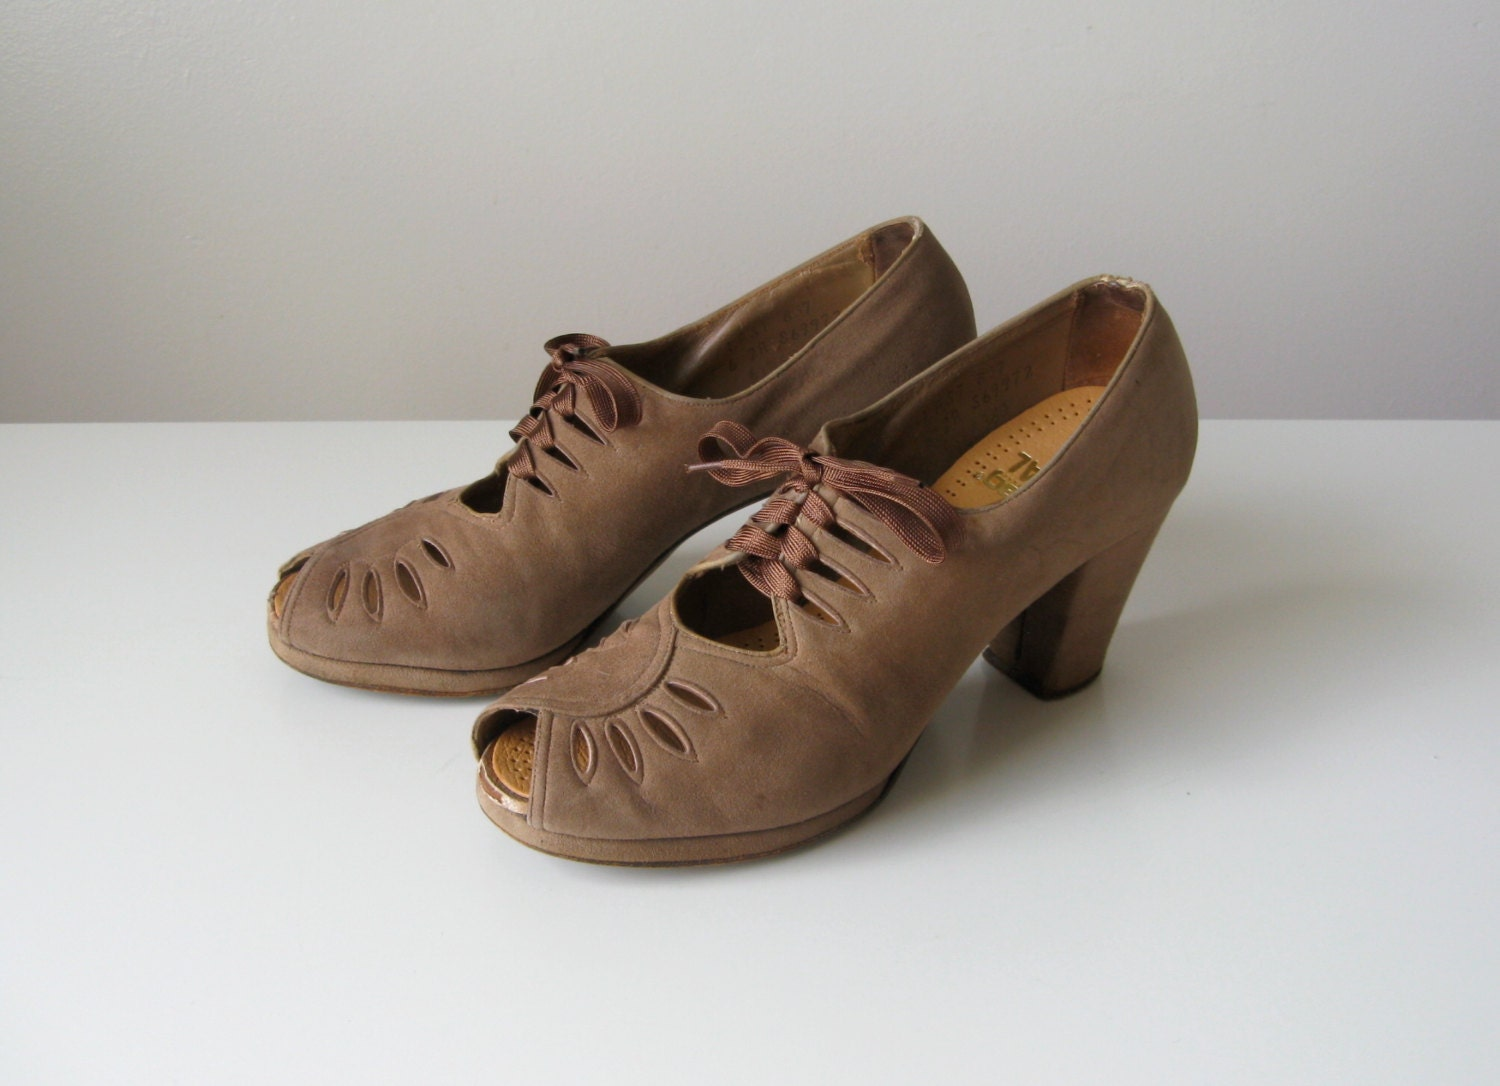 Beautiful Antique Shoes and Boots, Vintage Fashions